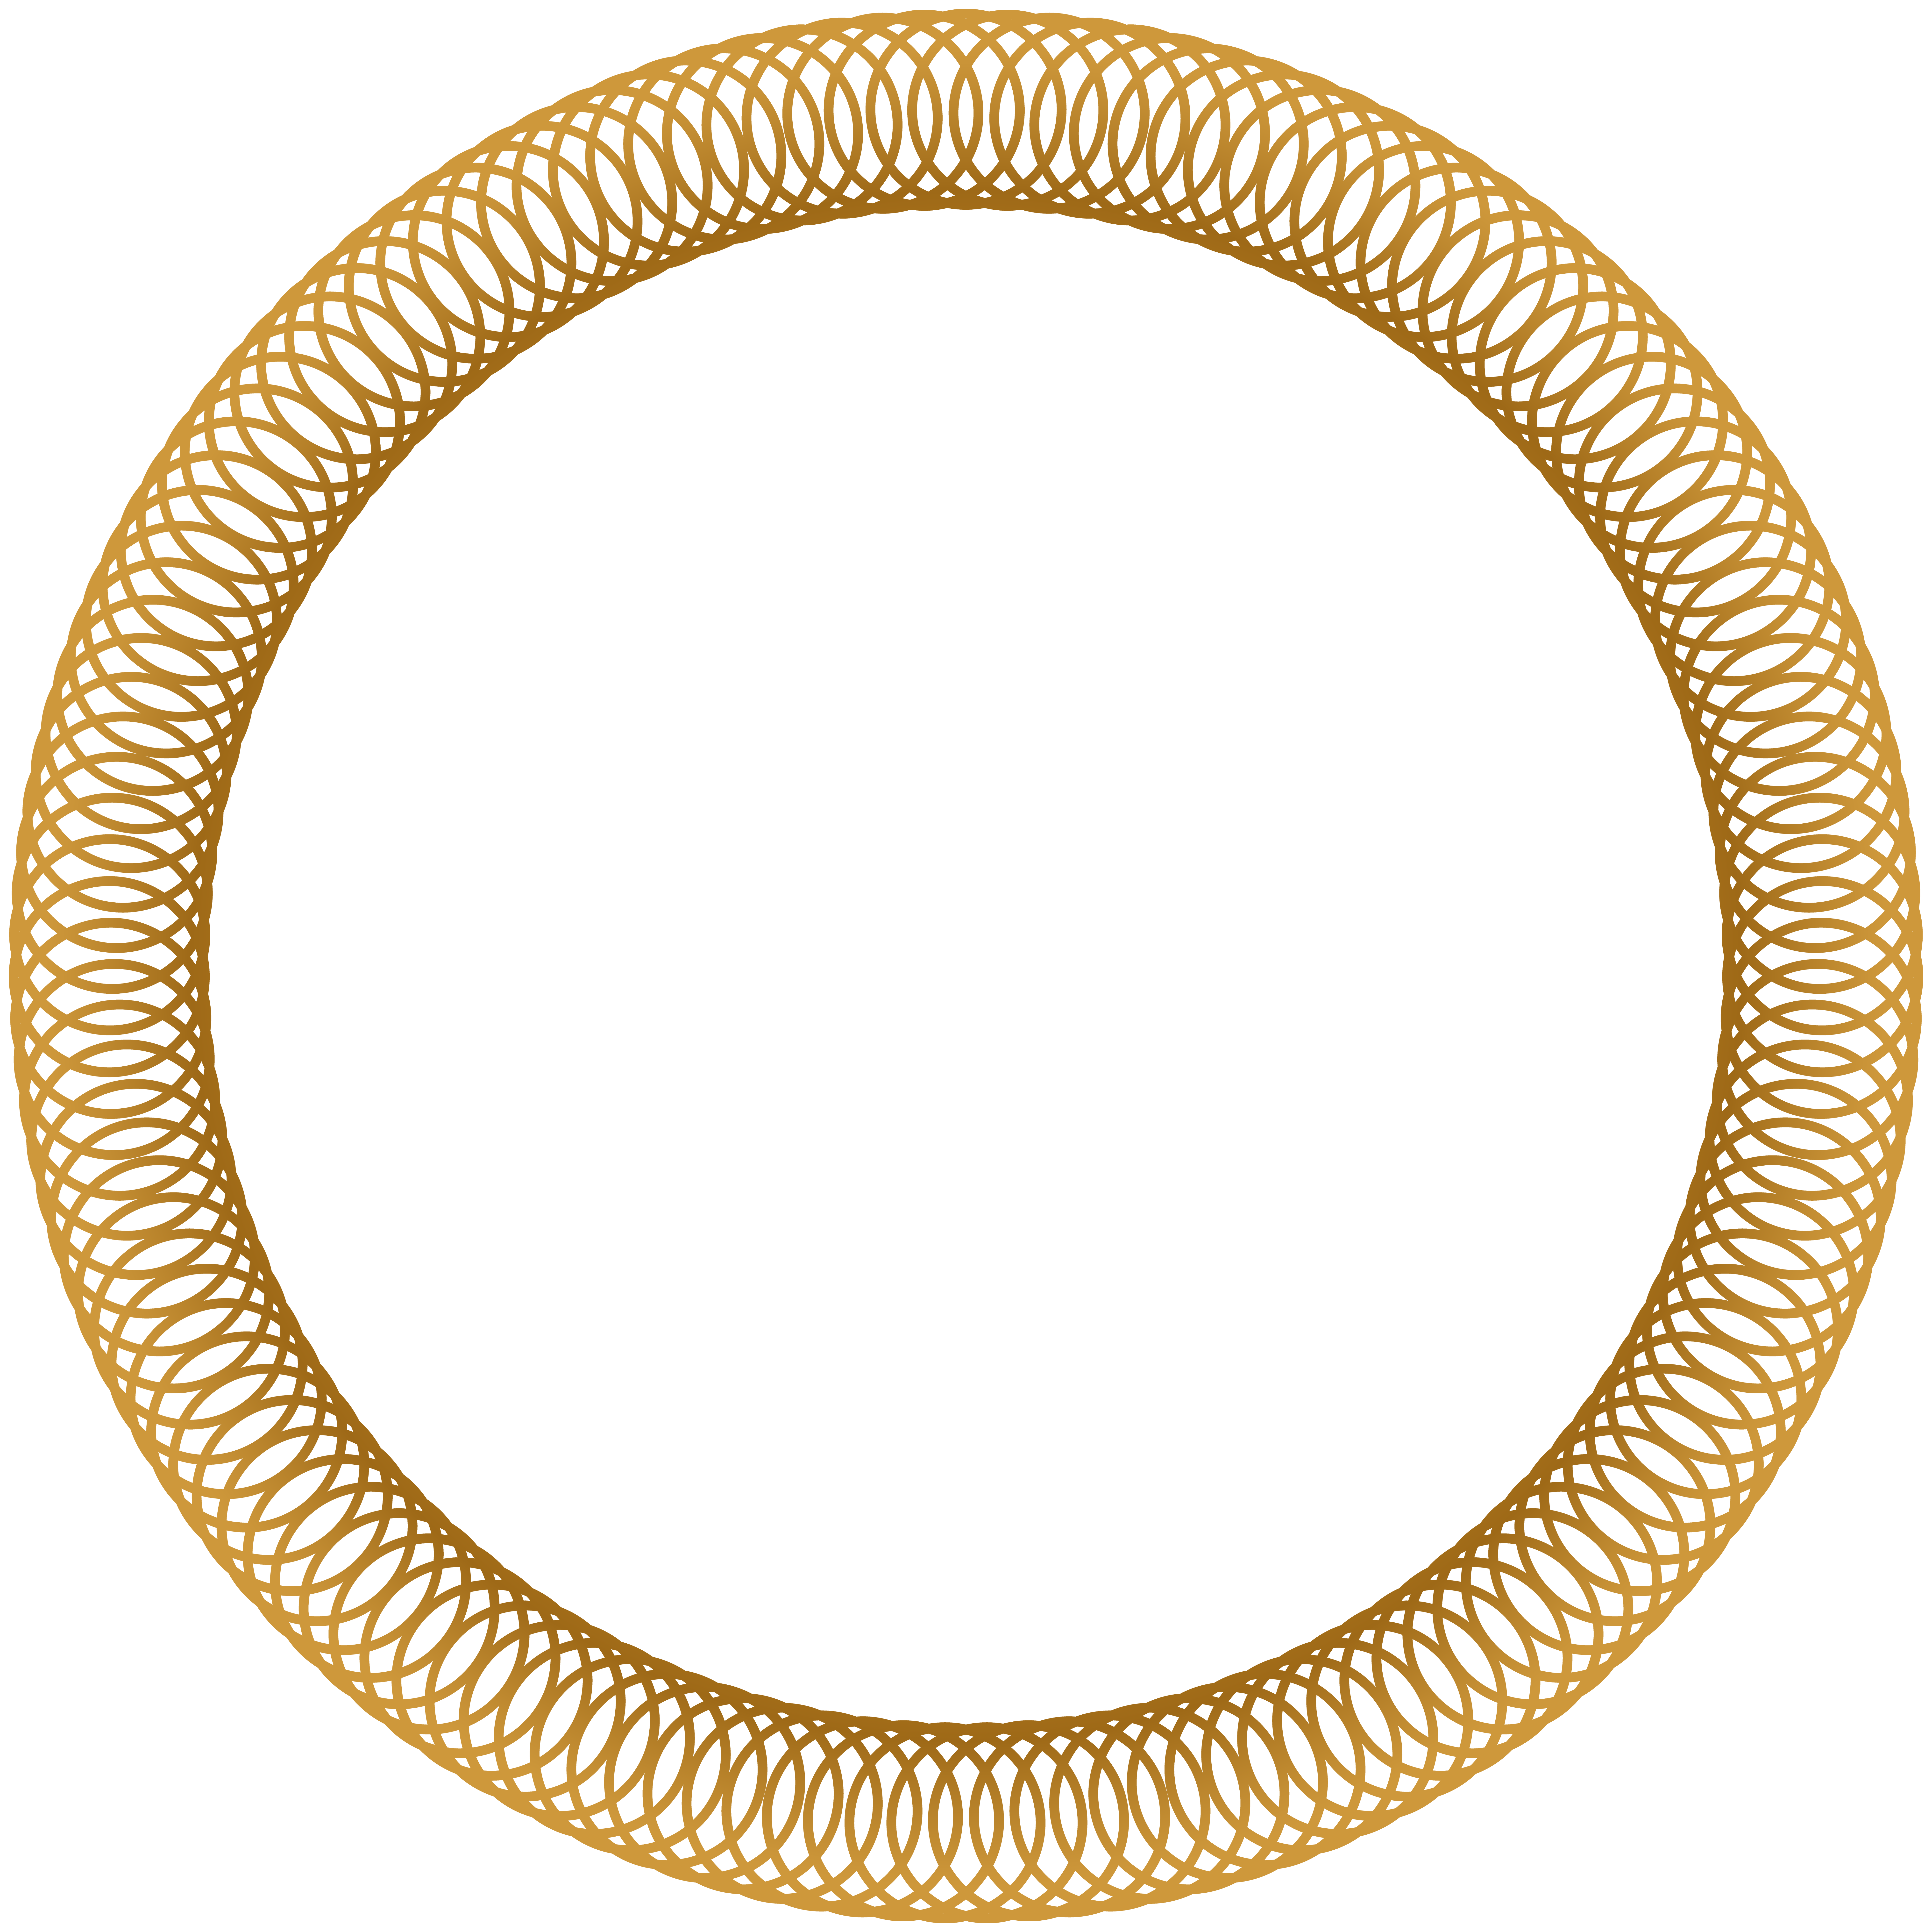 Deco clipart round. Frame clip art png